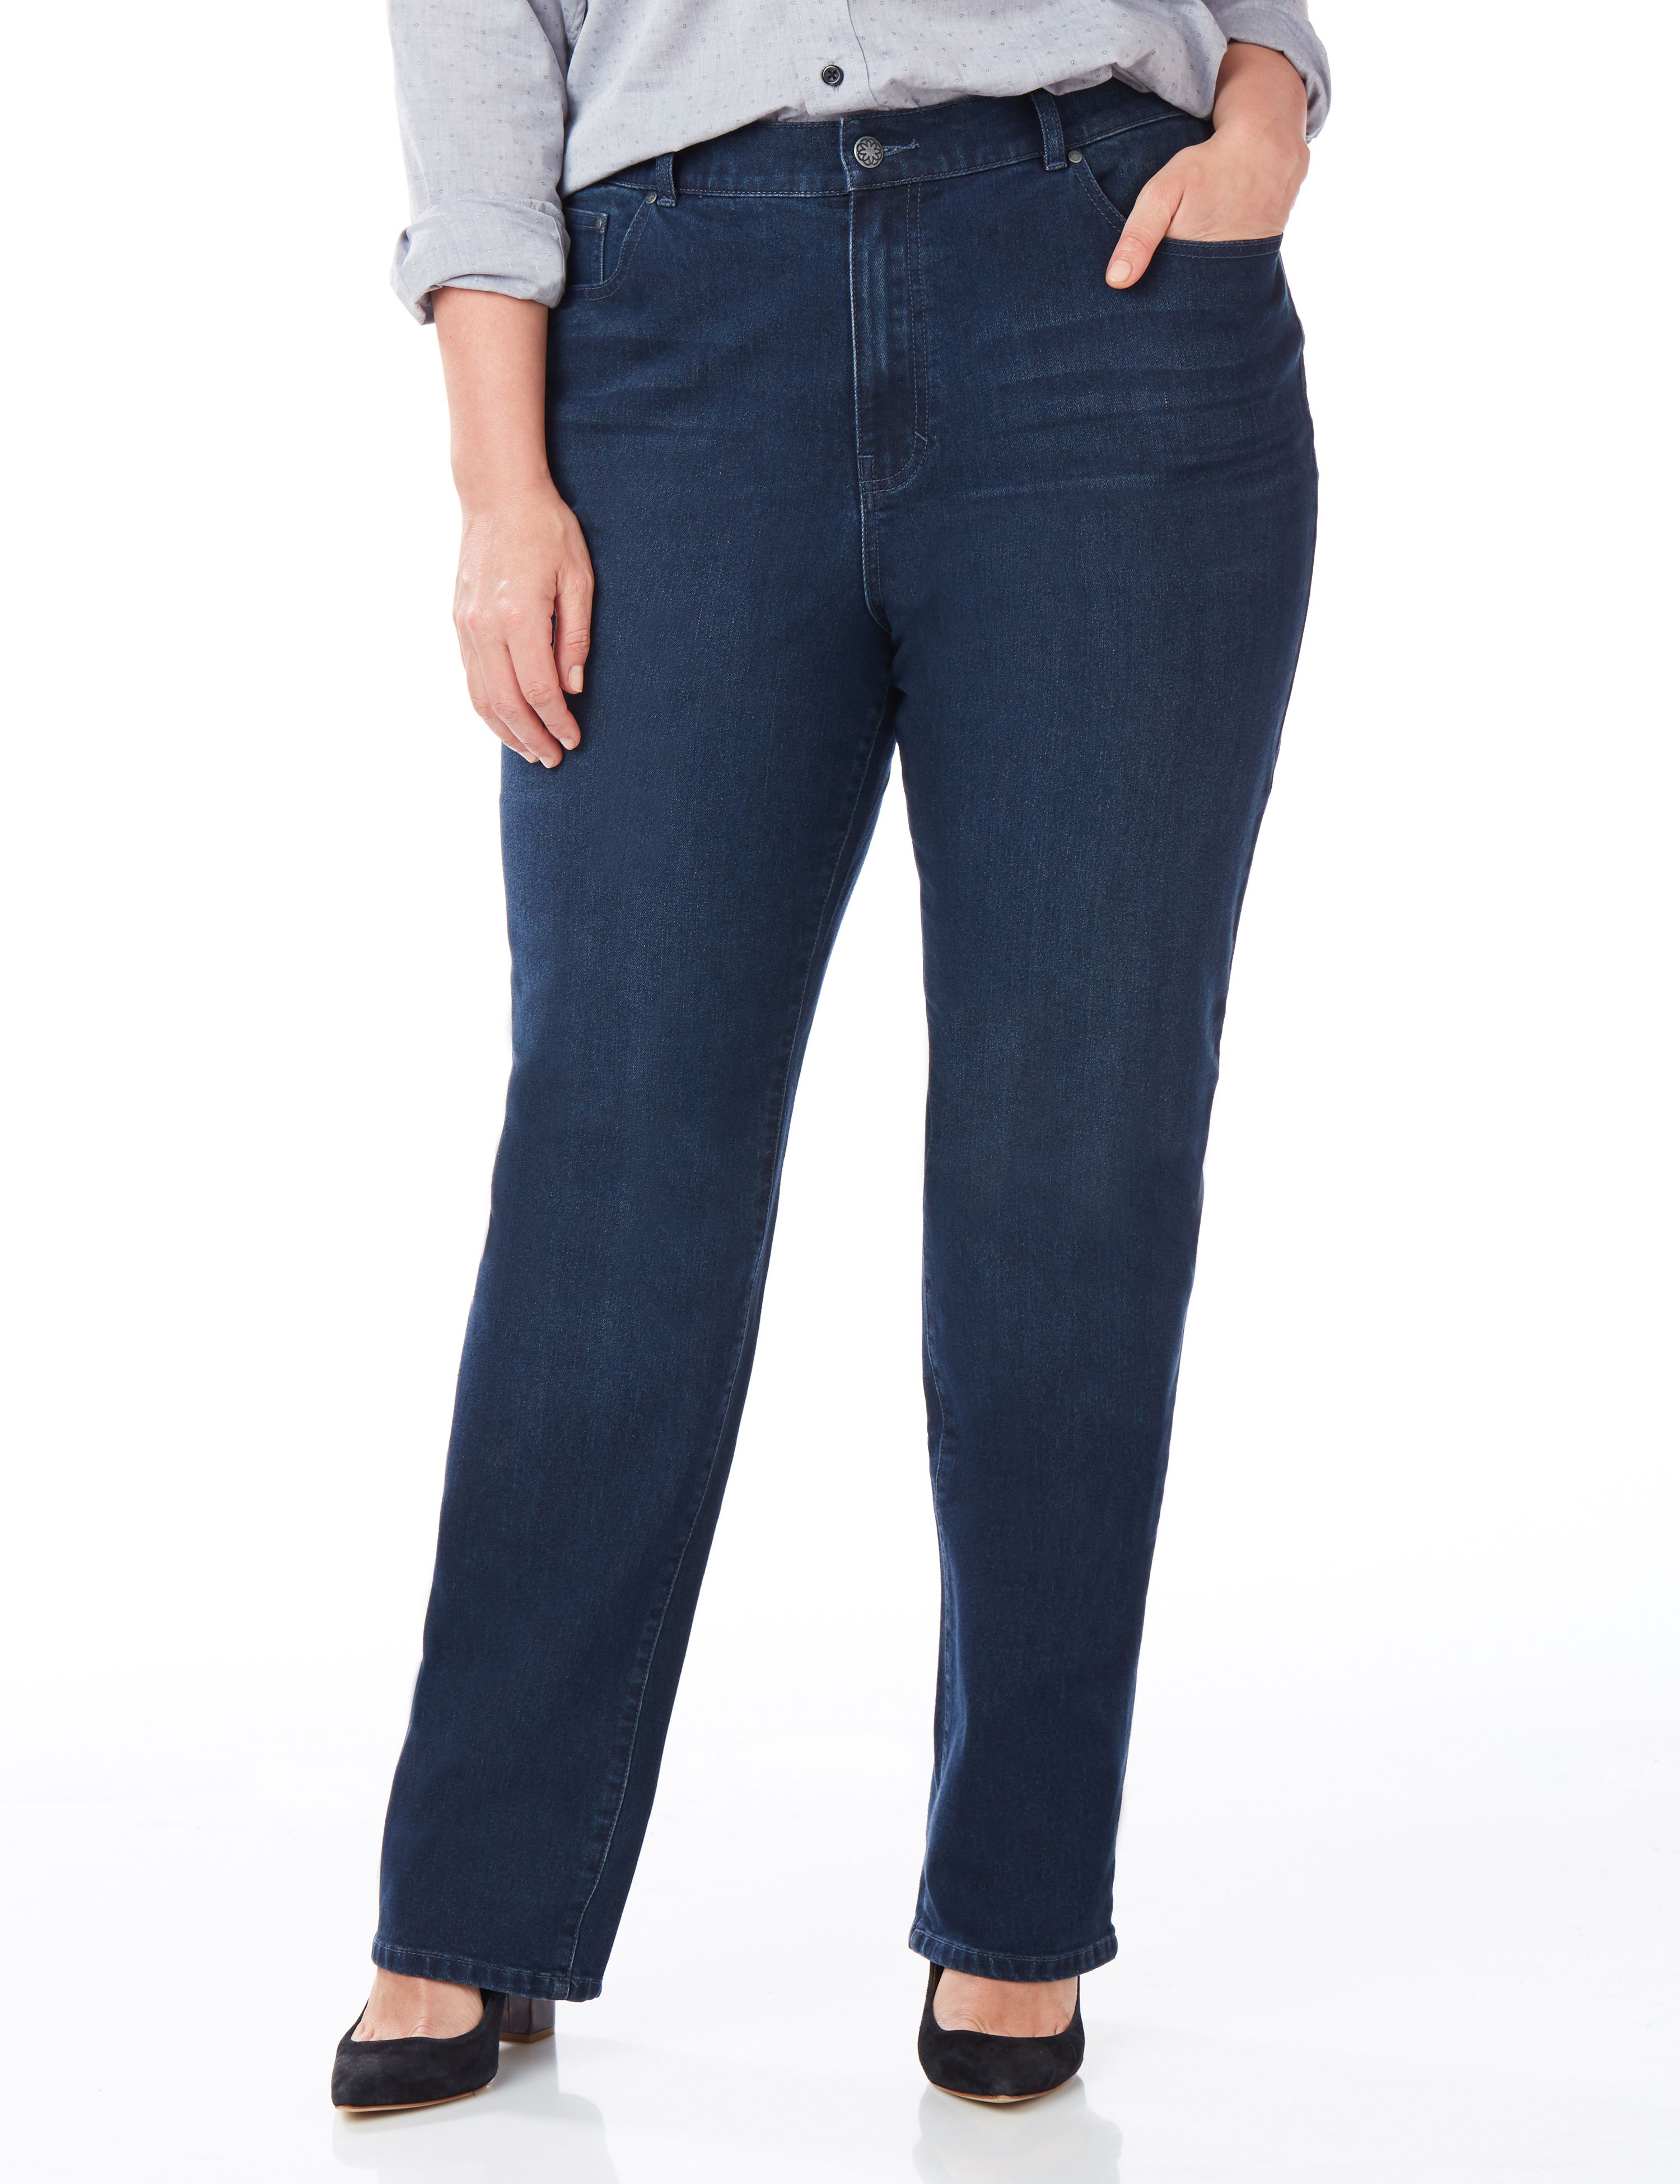 Right Fit Jean (Moderately Curvy) Right Fit Jean (Moderately Curvy) MP-300009951